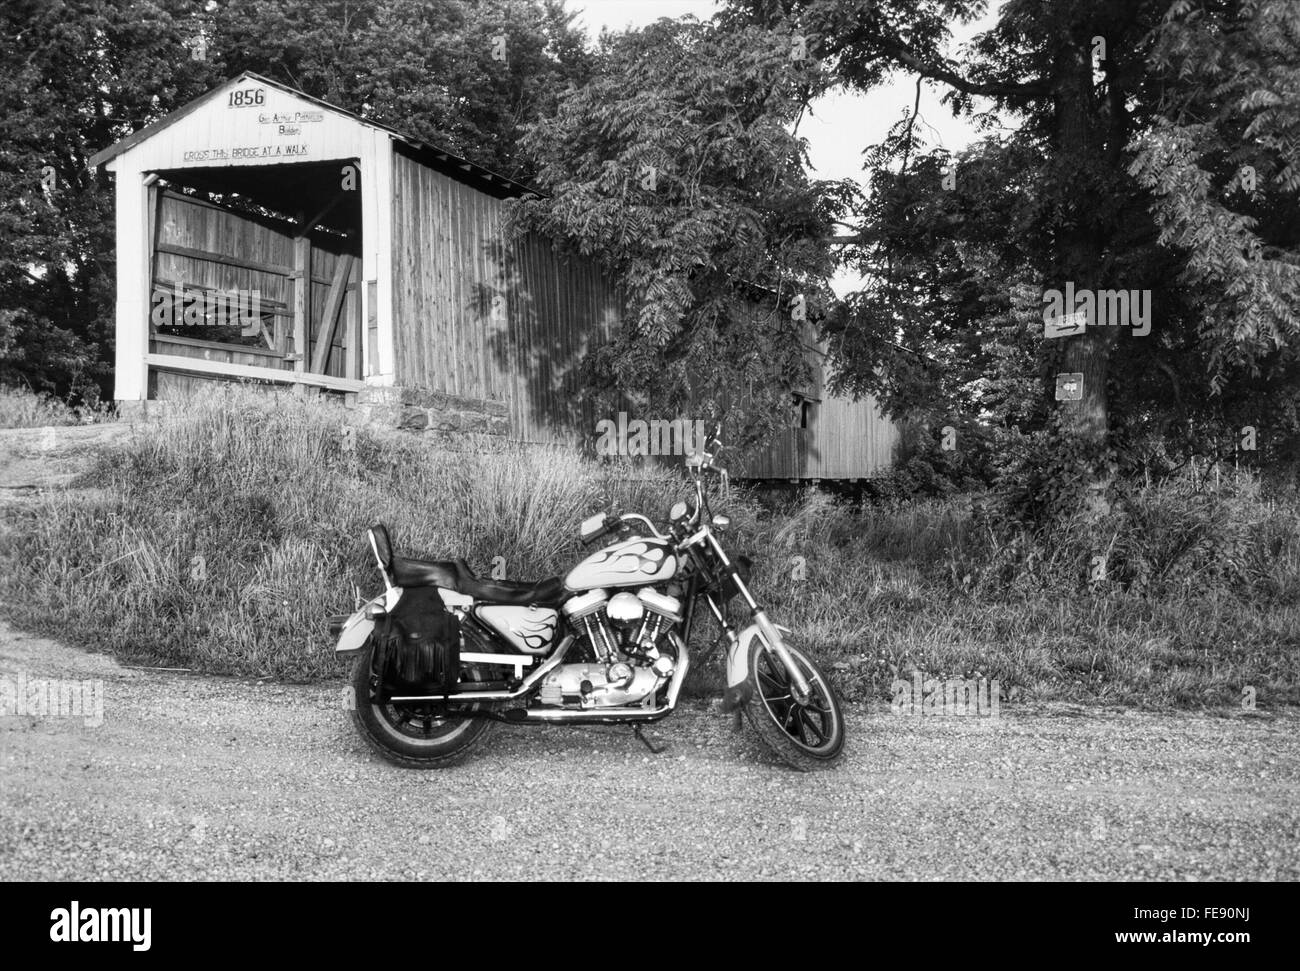 Side View Of A Motorcycle Parked By Built Structure - Stock Image